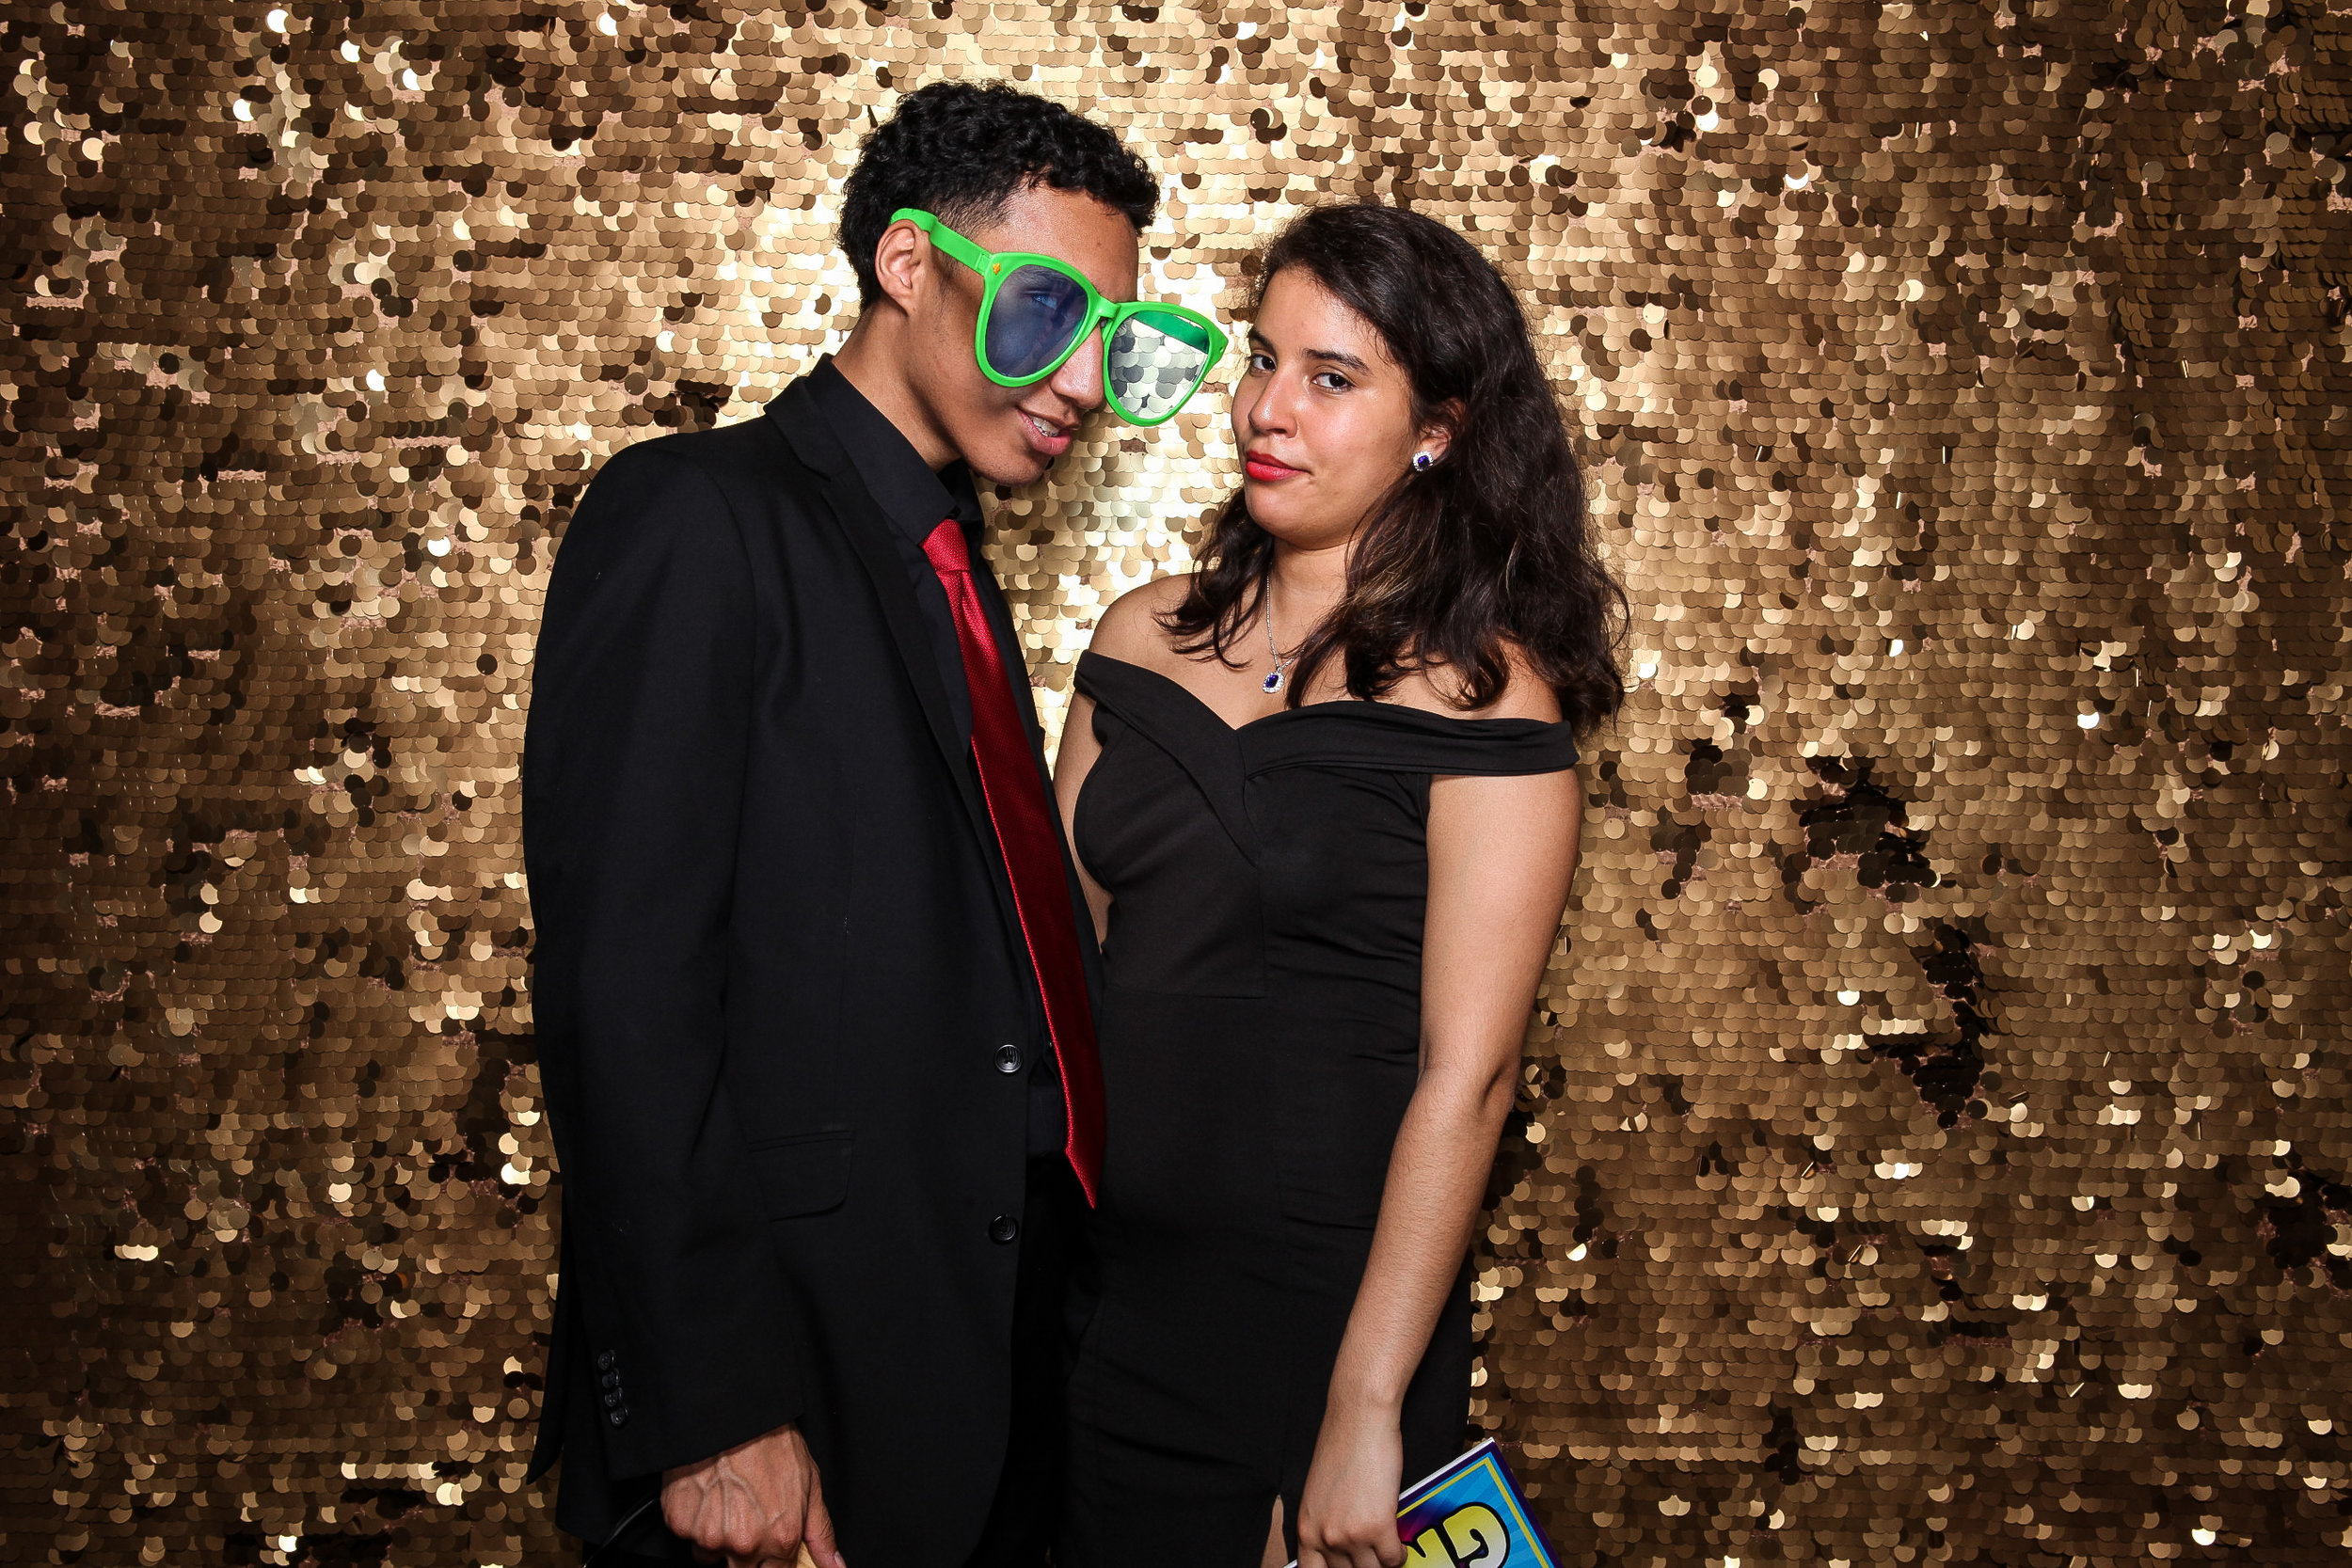 20190503_Adelphi_Senior_Formal-298.jpg